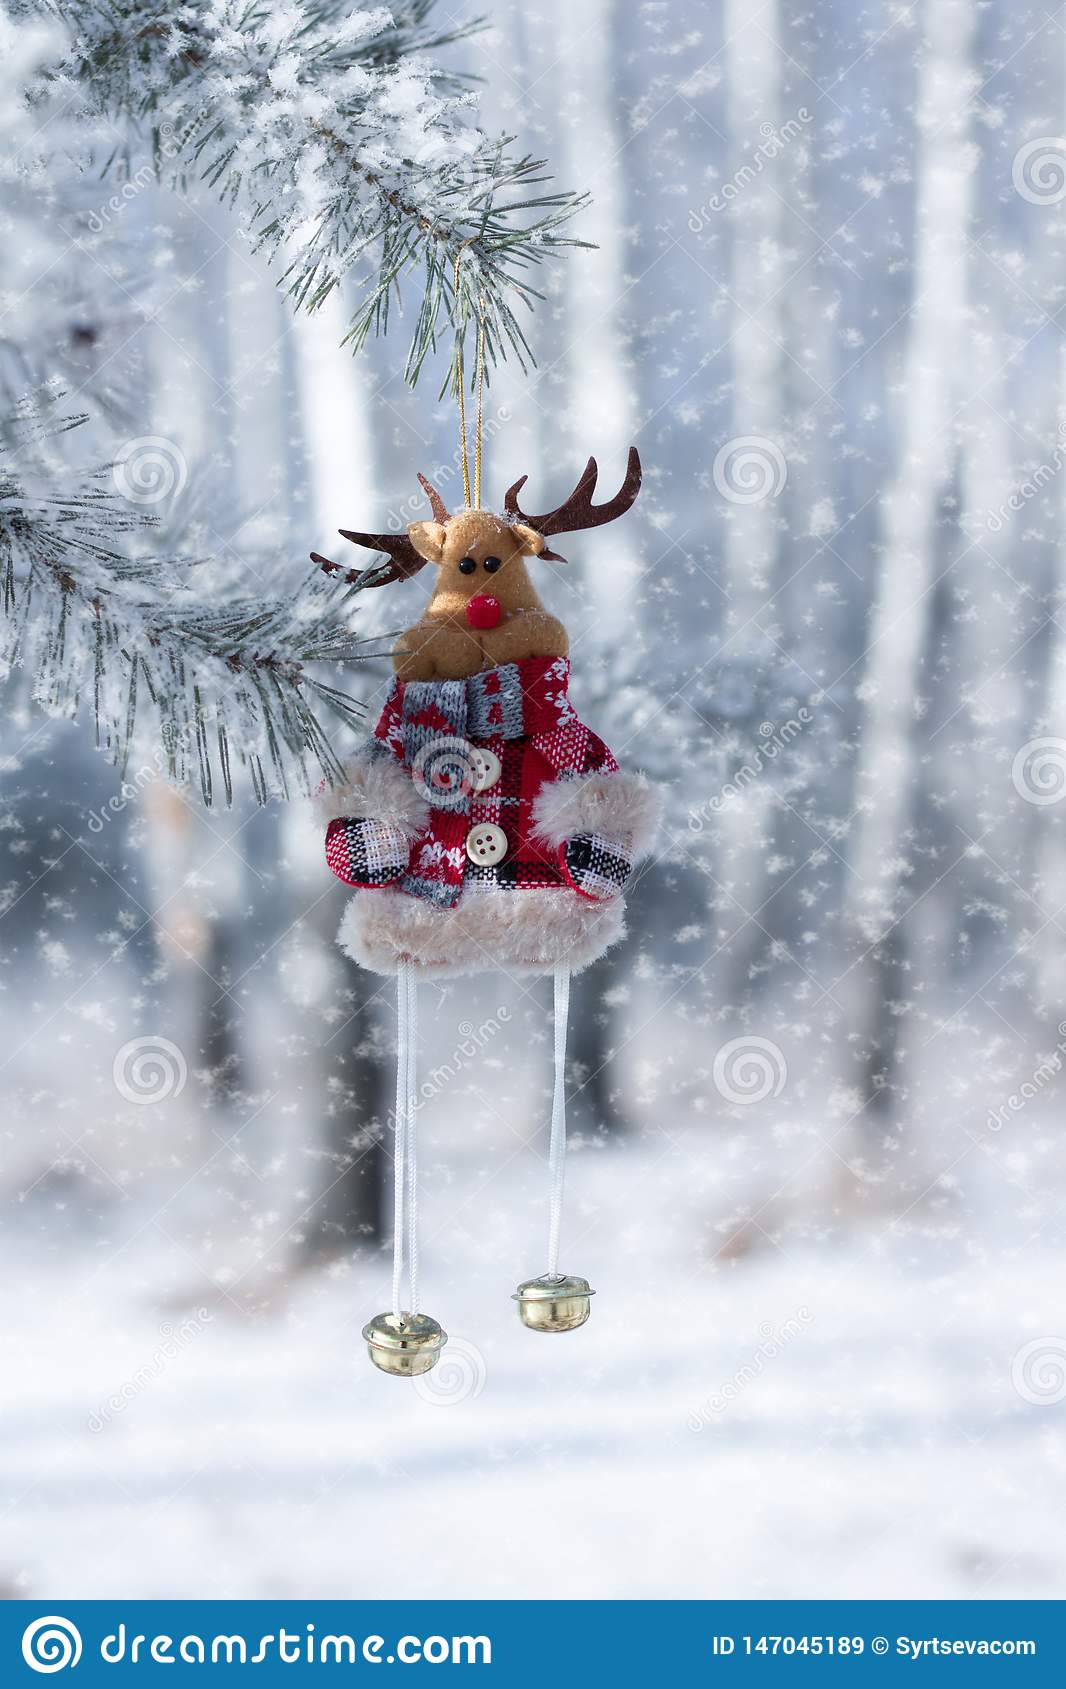 Toy deer with bells, Christmas decoration, close-up, against the winter forest, where snow falls